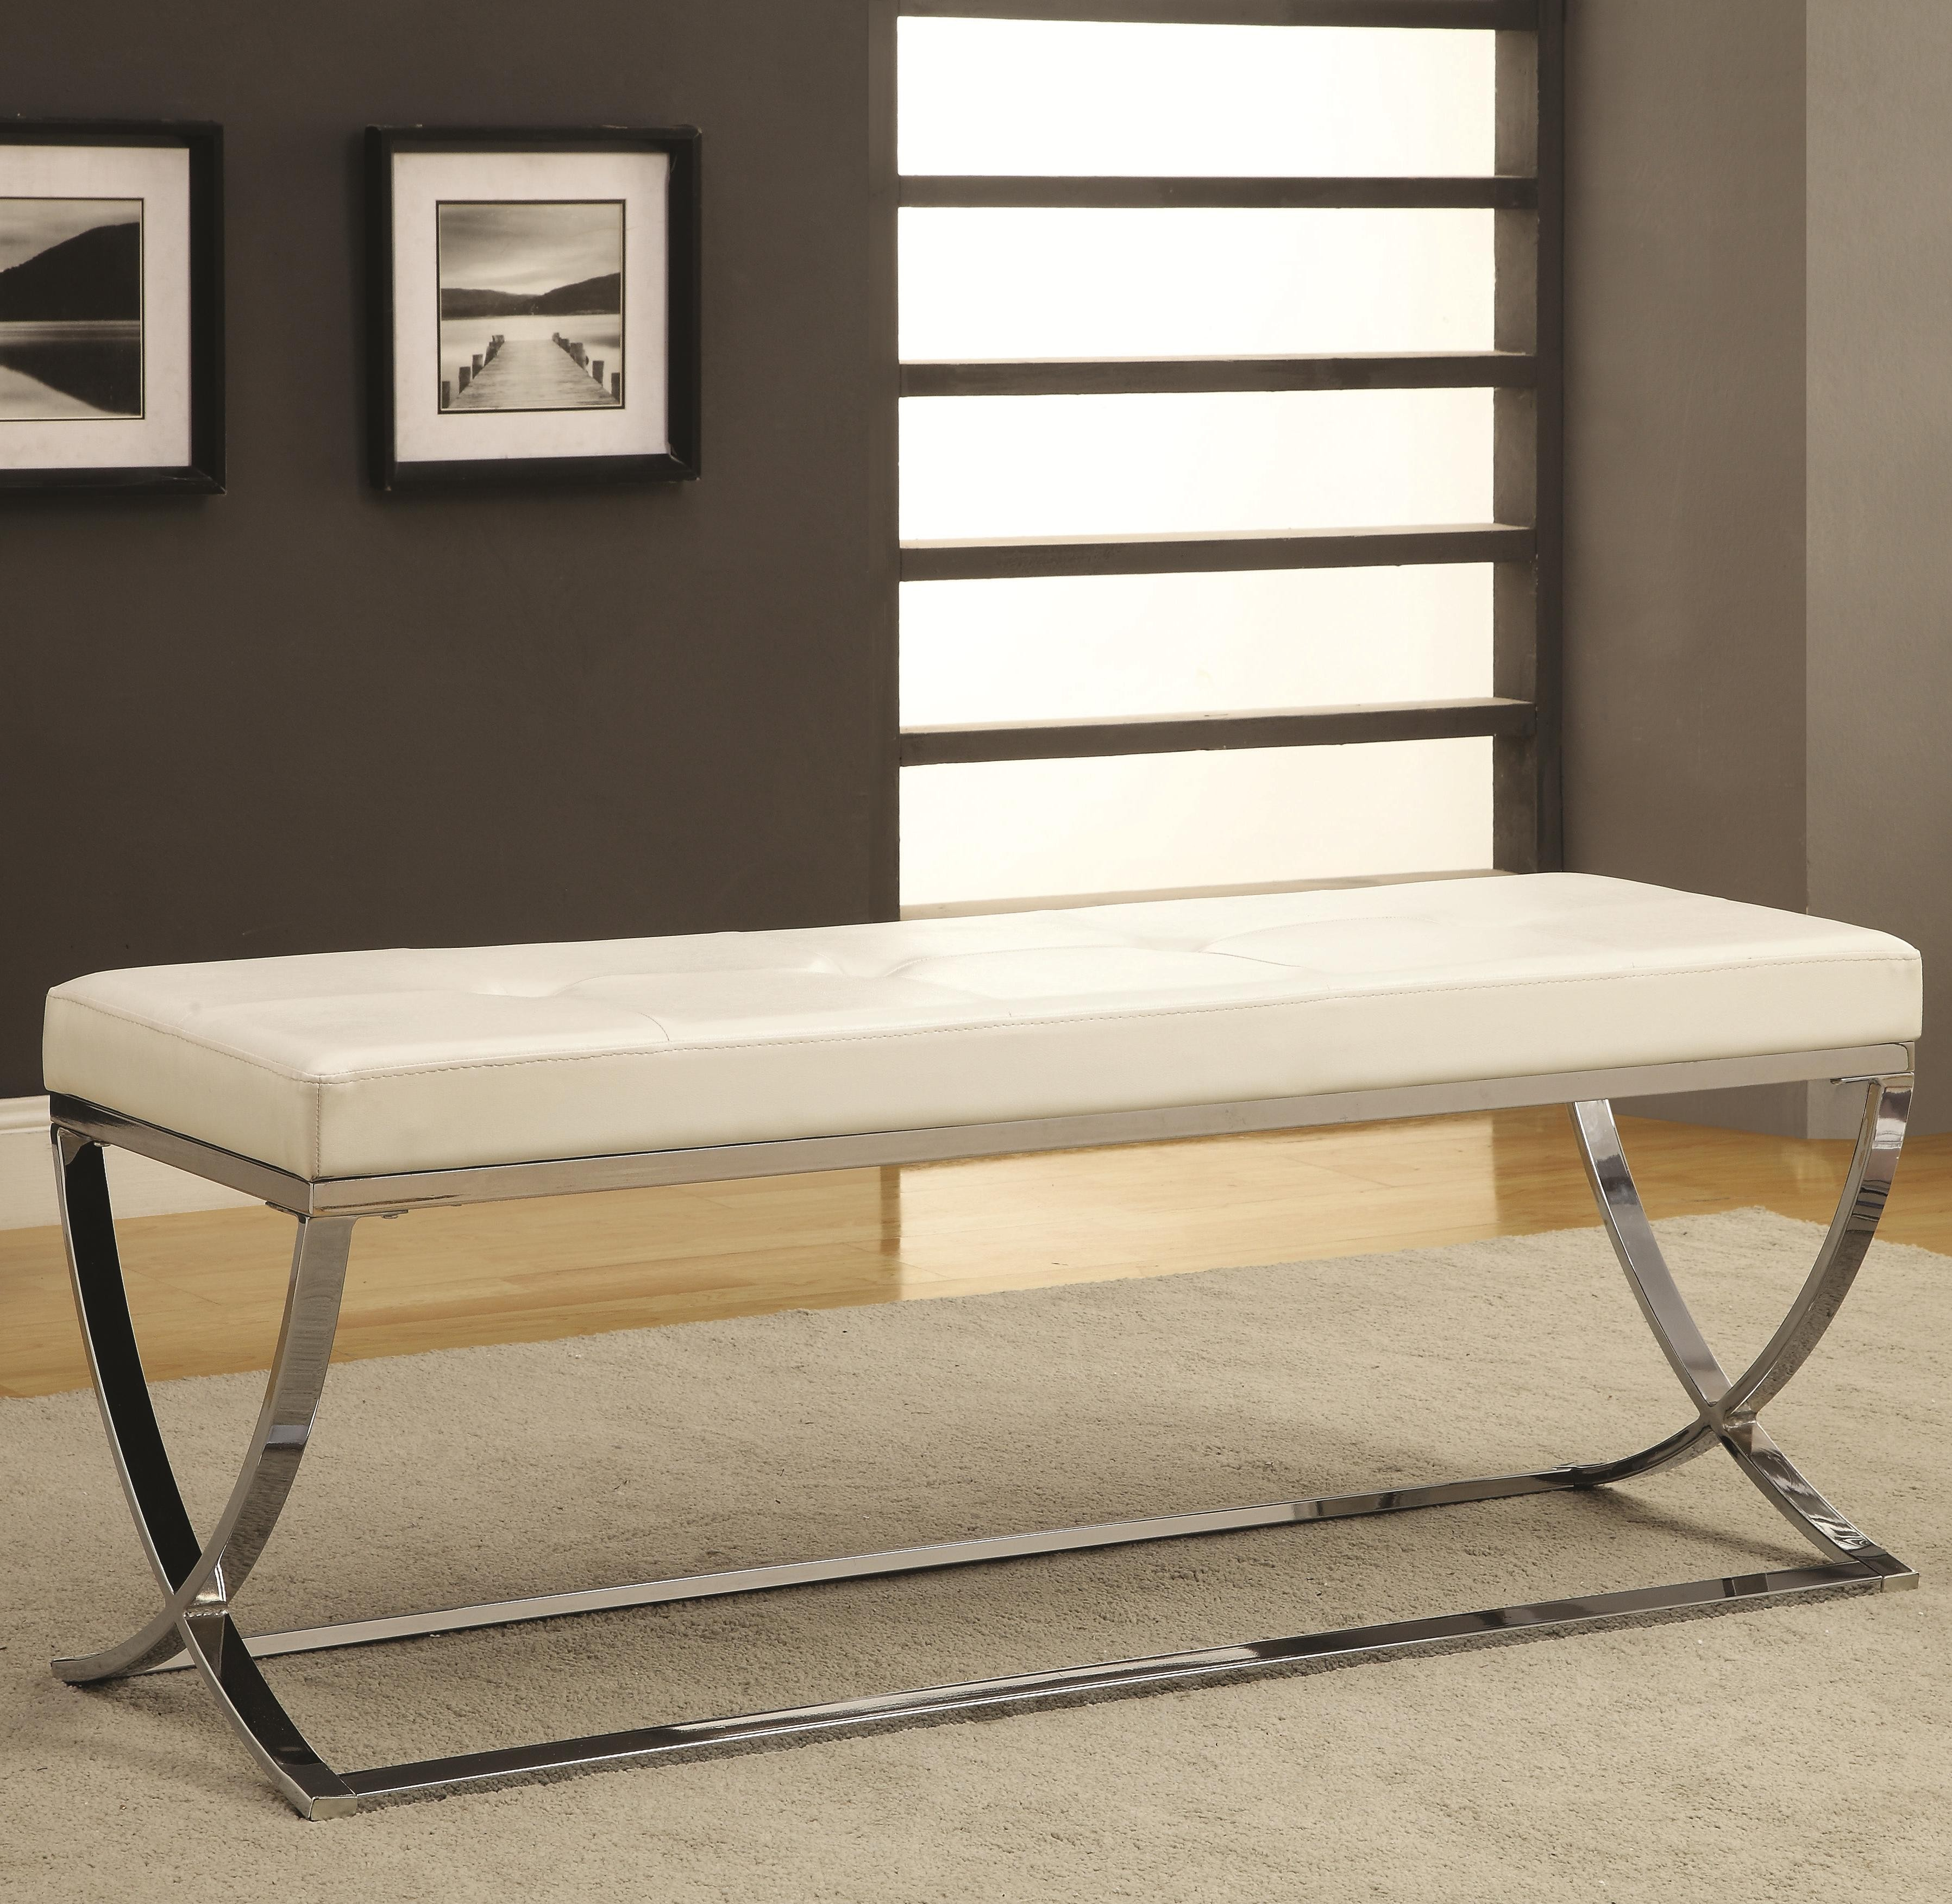 501157 Vinyl Bench From Coaster 501157 Coleman Furniture